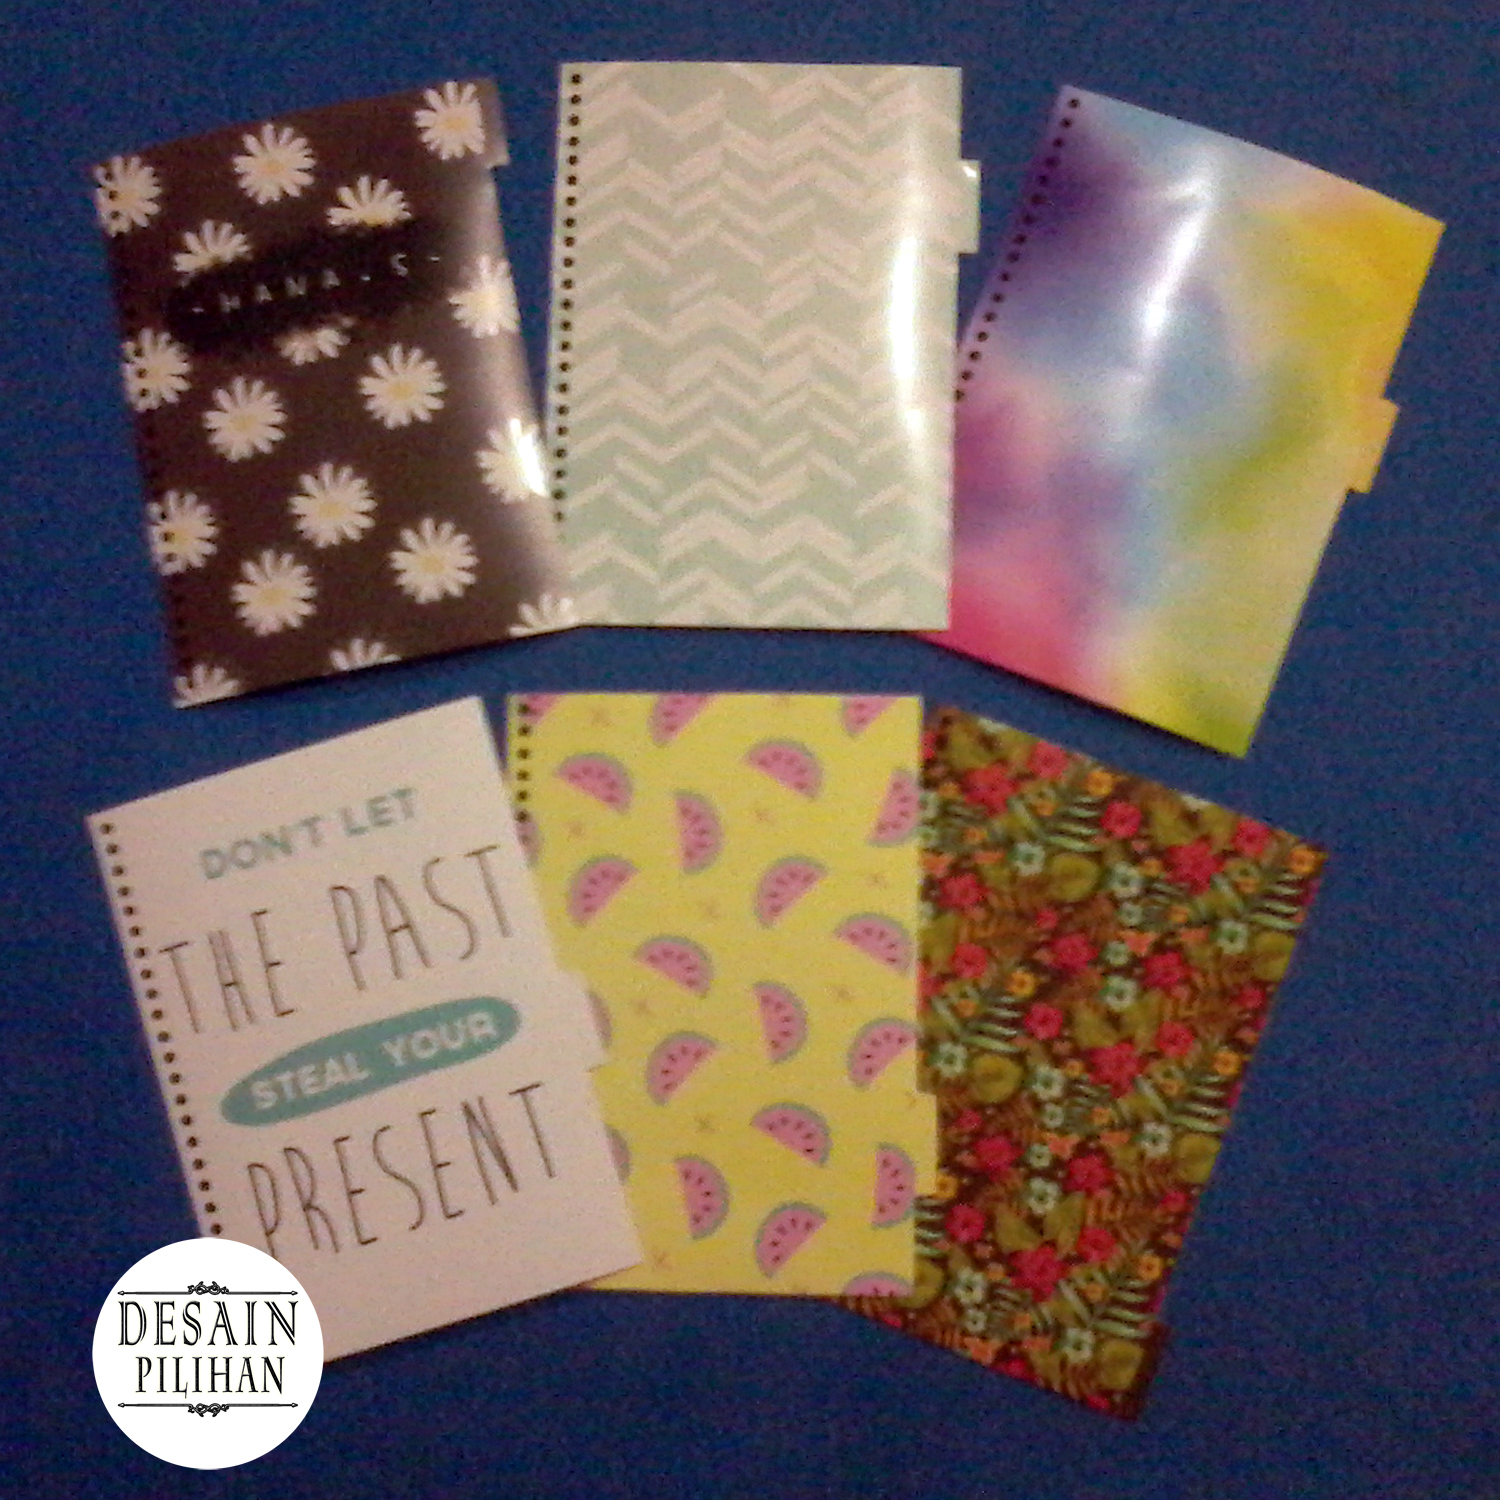 PEMBATAS BINDER FLOWERS, FRUITS, QUOTE, COLOR, MIX